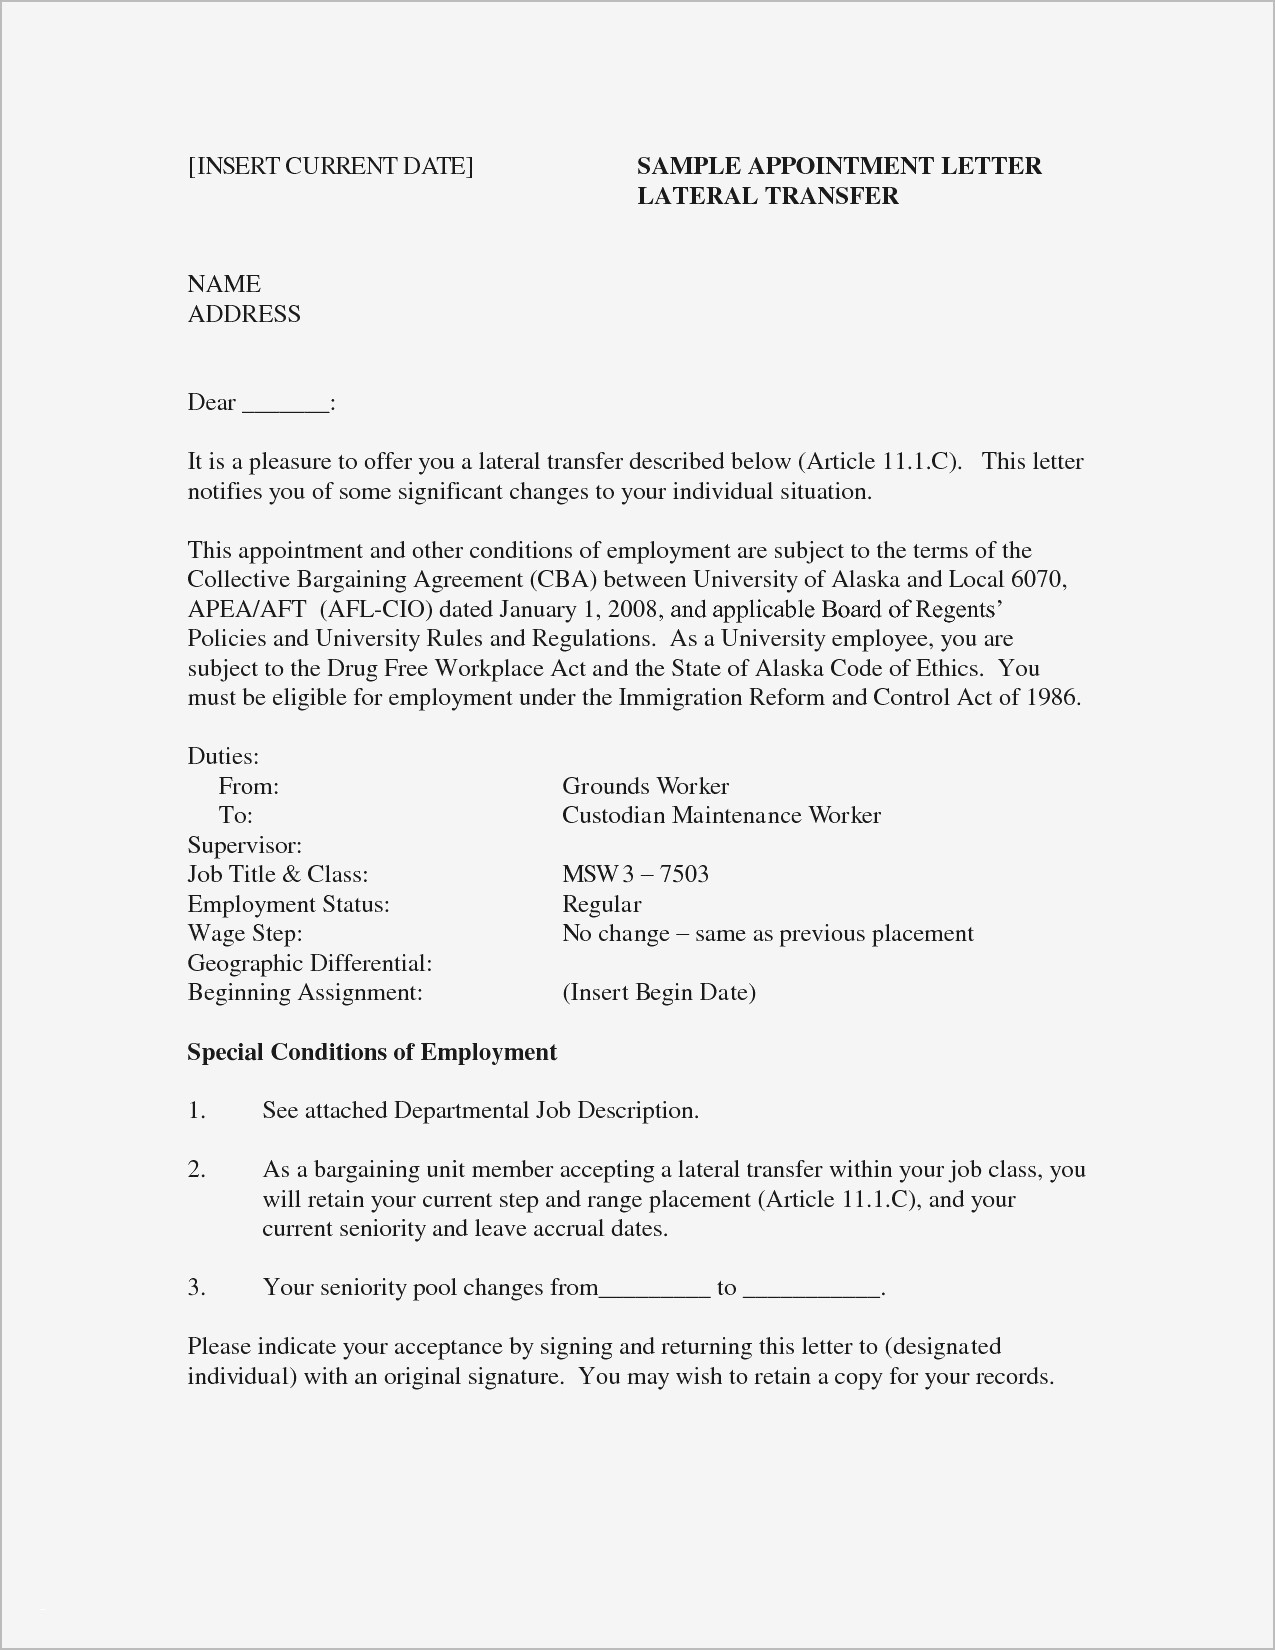 What to Include In Resume - Typical Resume Refrence Examples Resume Refrence Job Resumes